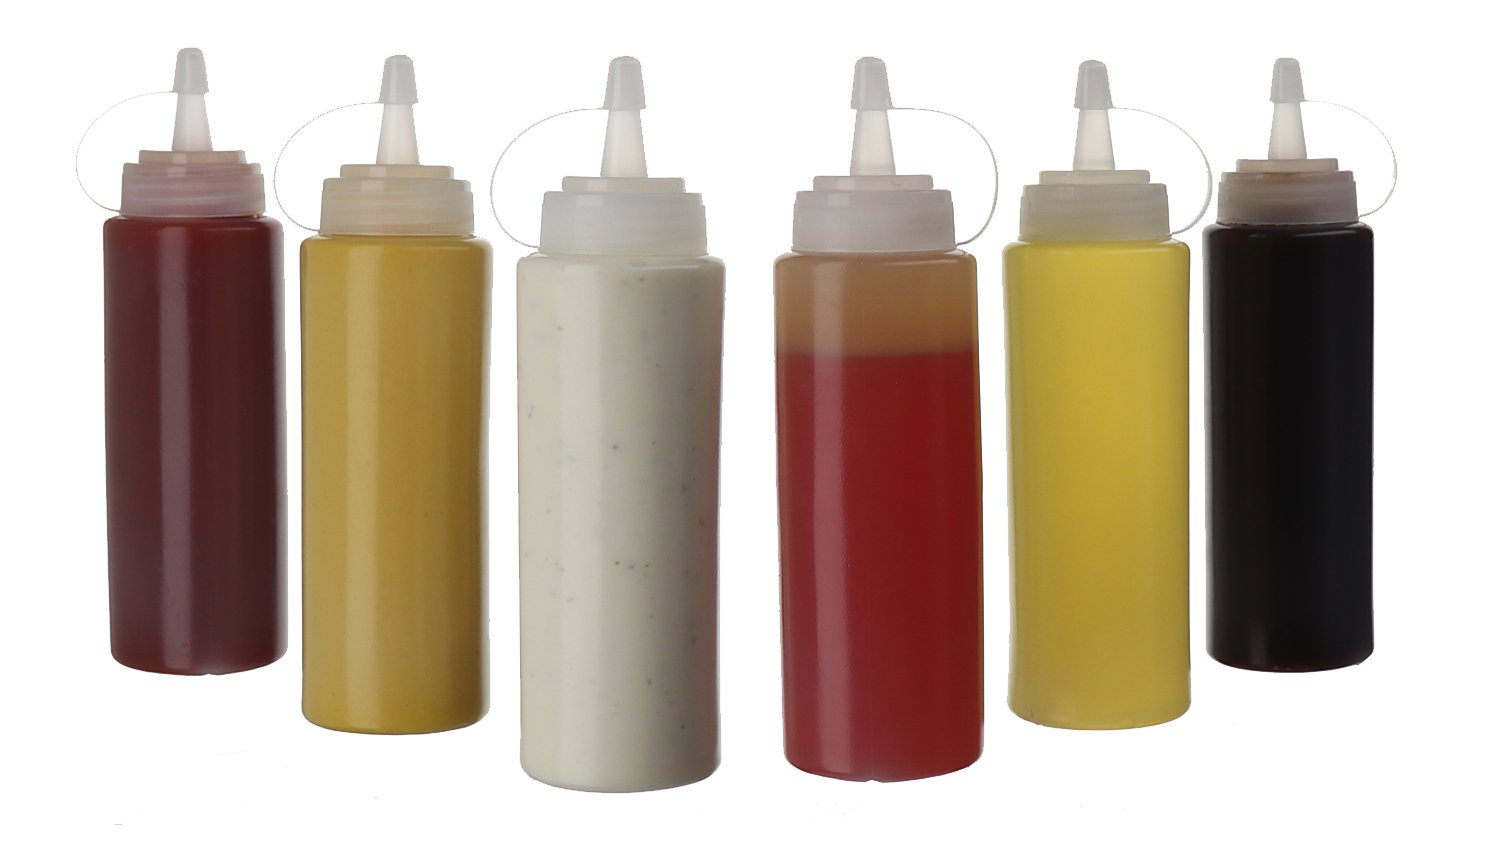 (6pk) 8 oz Plastic Squeeze Squirt Condiment Bottles with Twist On Cap Lids_ top dispensers for ketchup mustard mayo hot sauces olive oil_ bulk clear bpa free bbq set by Oaklyn